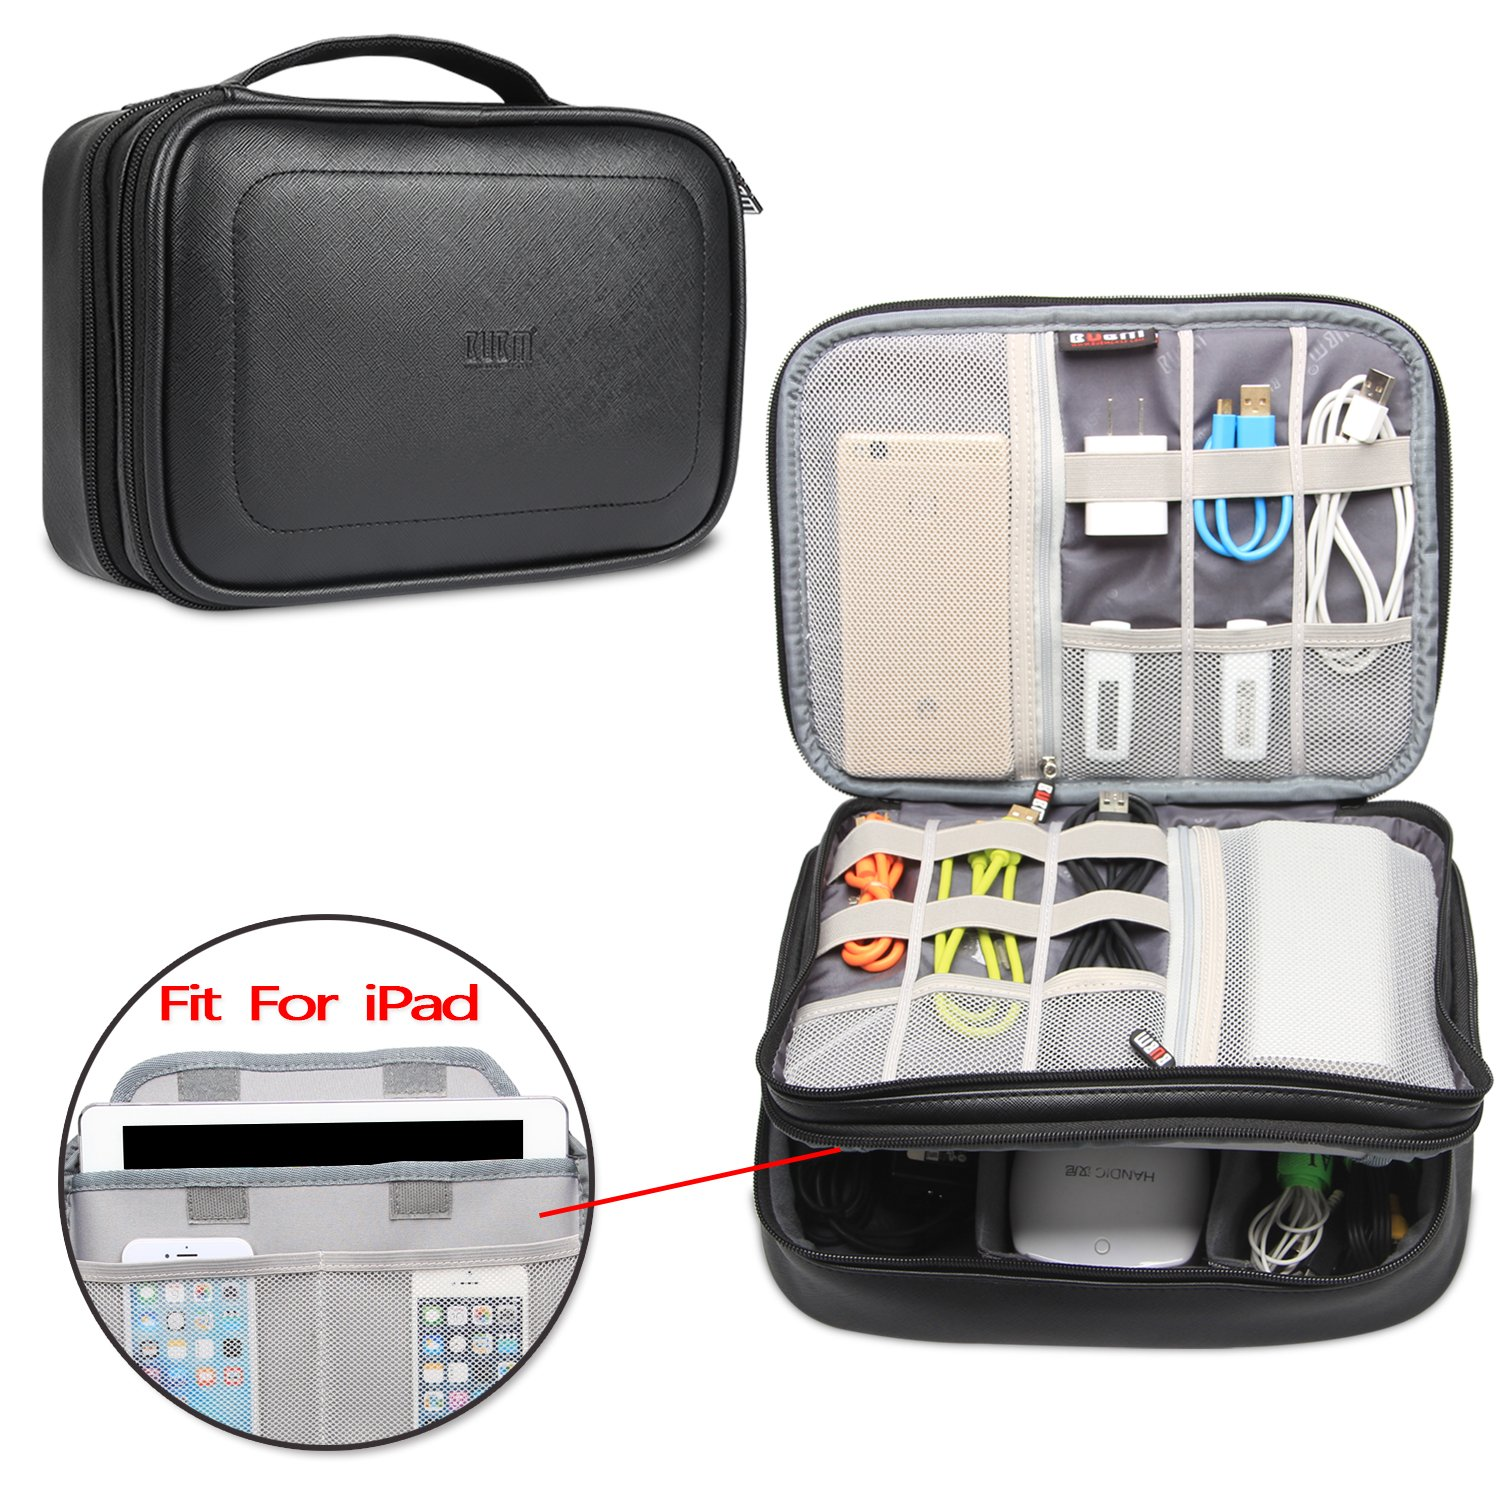 BUBM Electronic Organizer, PU Double Layer Travel Accessories Storage Bag for Cord, Adapter, Battery, Camera and More-a Sleeve Pouch for iPad Or up to 9.7'' Tablet(Large, Black)